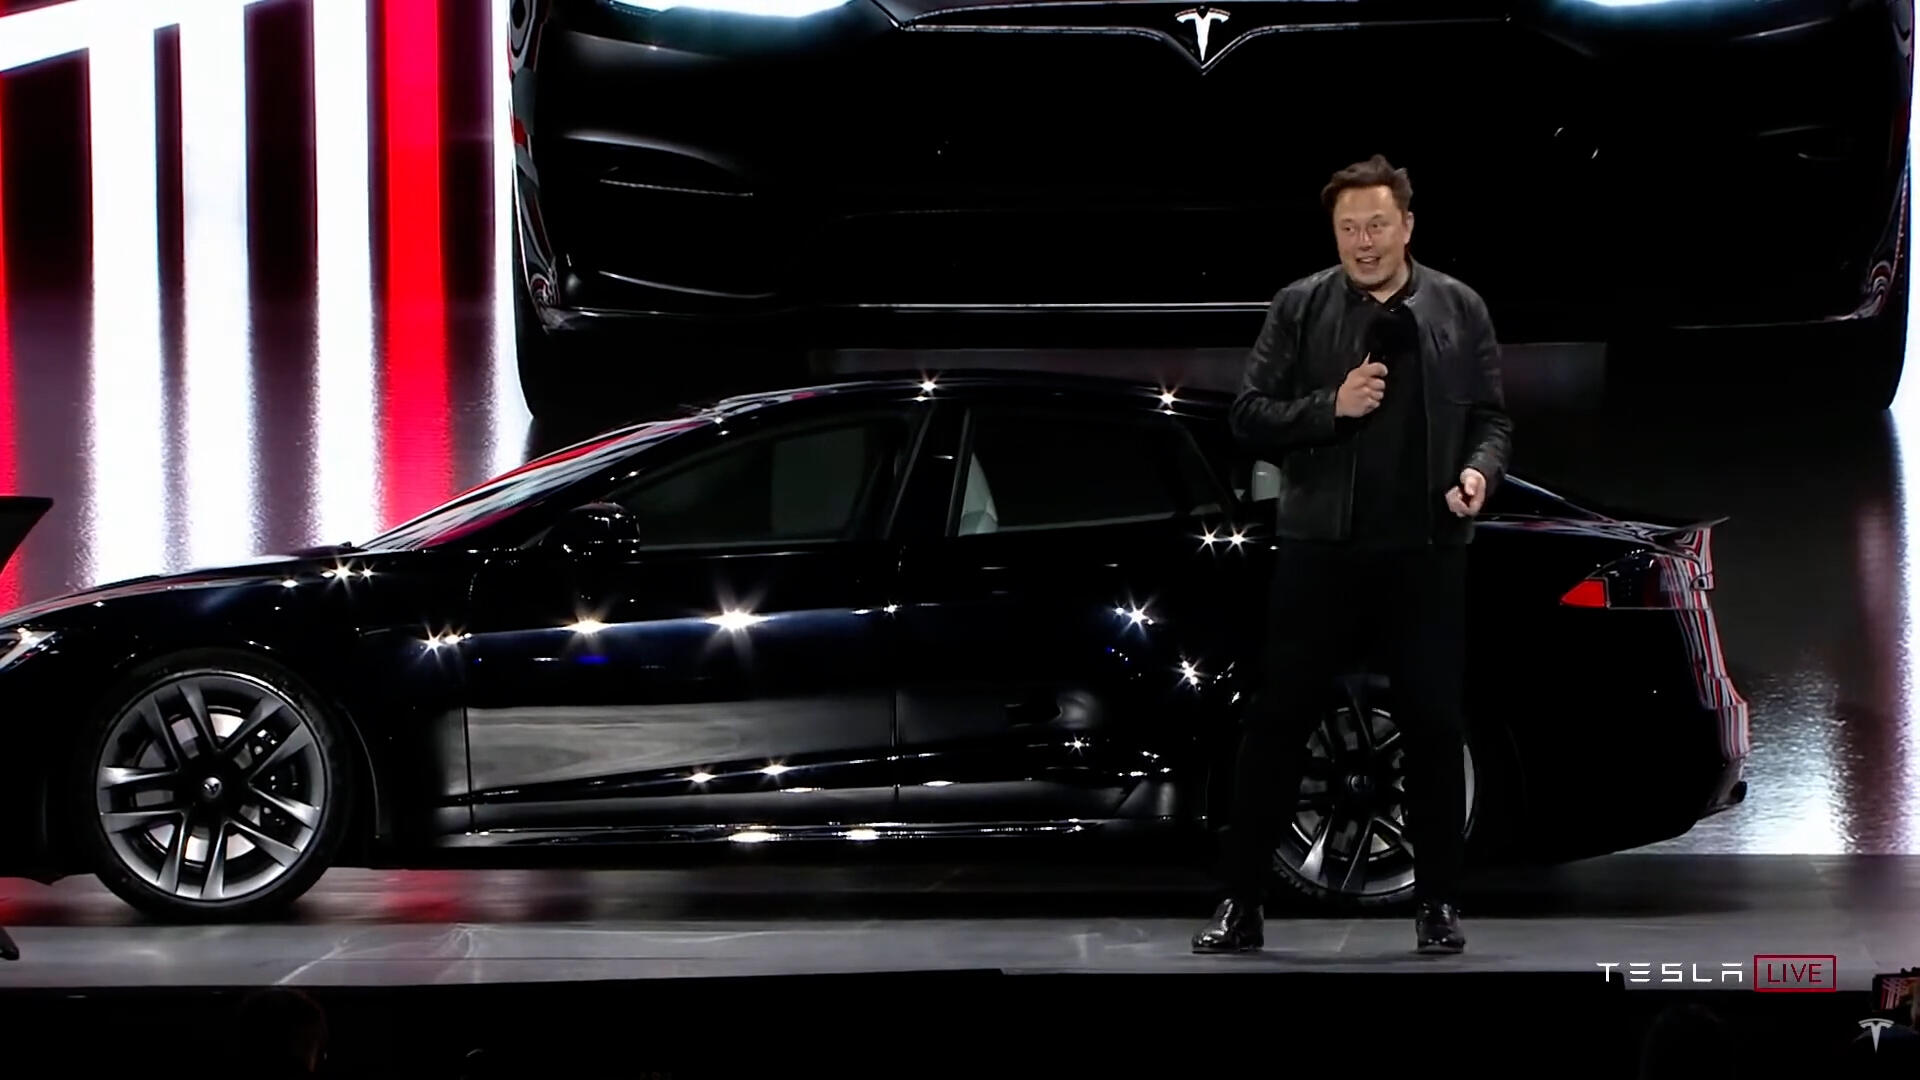 Video: New Tesla Model S Plaid rolls out, Xbox coming to smart TVs